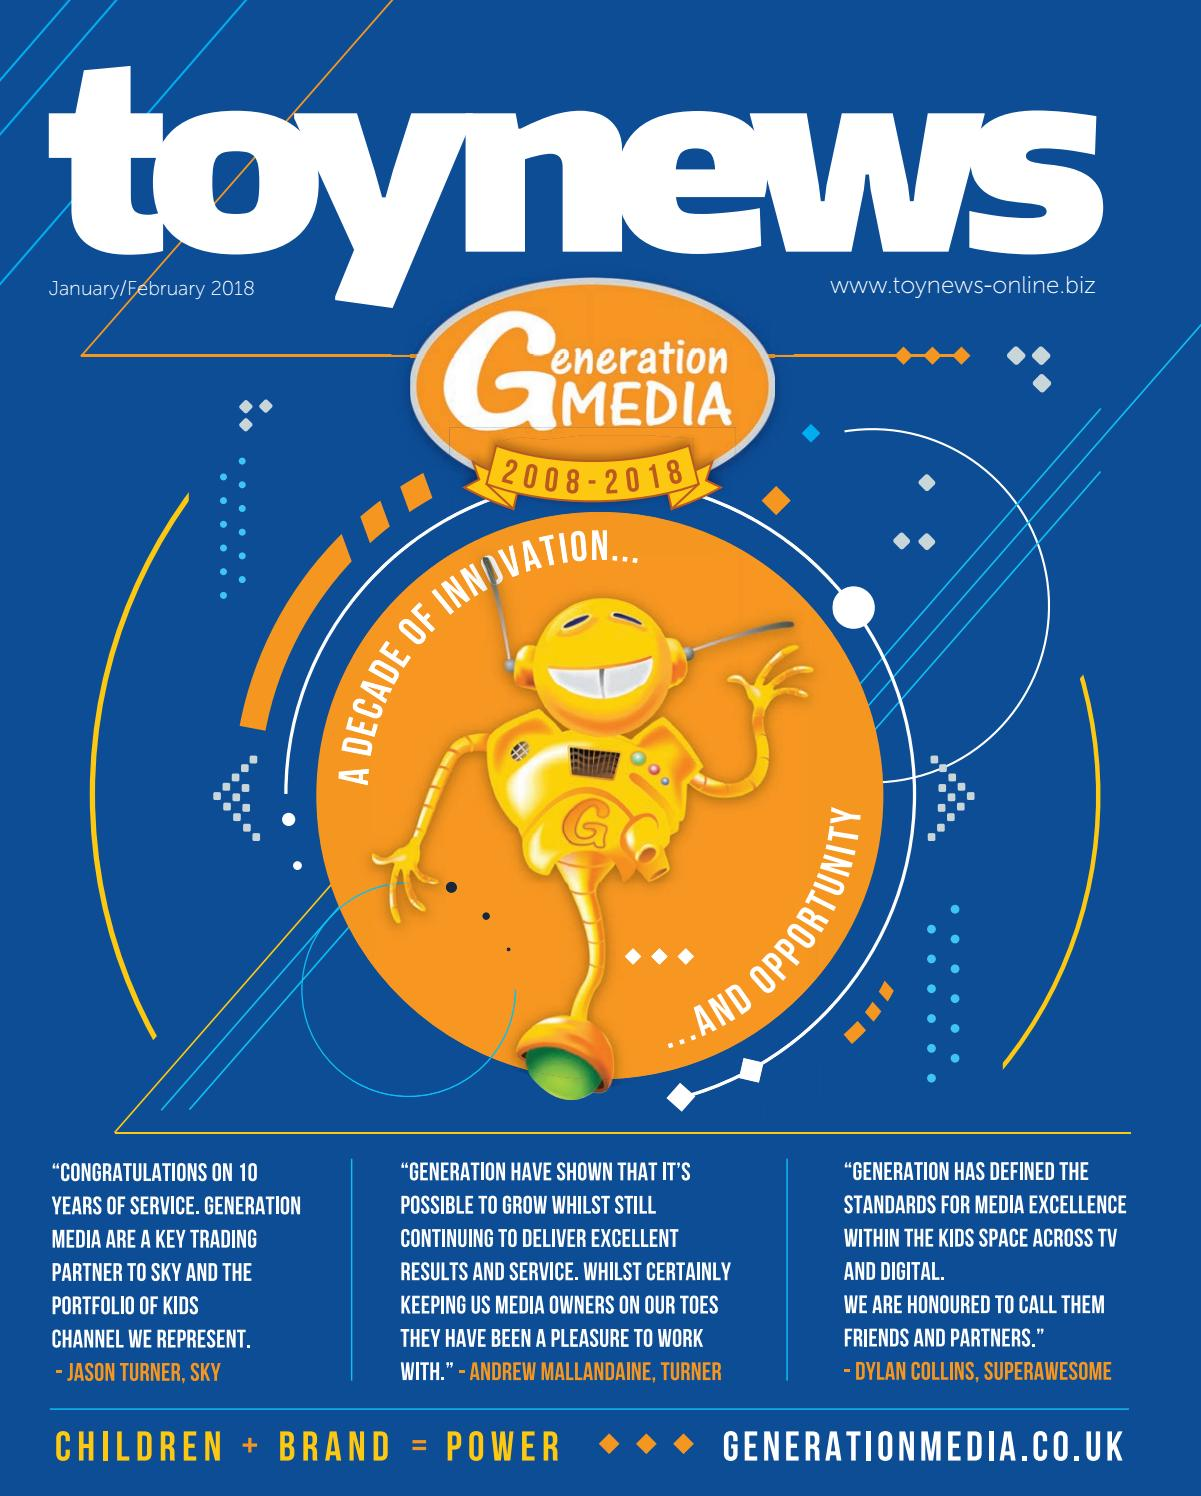 Toynews January February 2018 By Biz Media Ltd Issuu - placeit logo generator inspired by roblox for a basketball